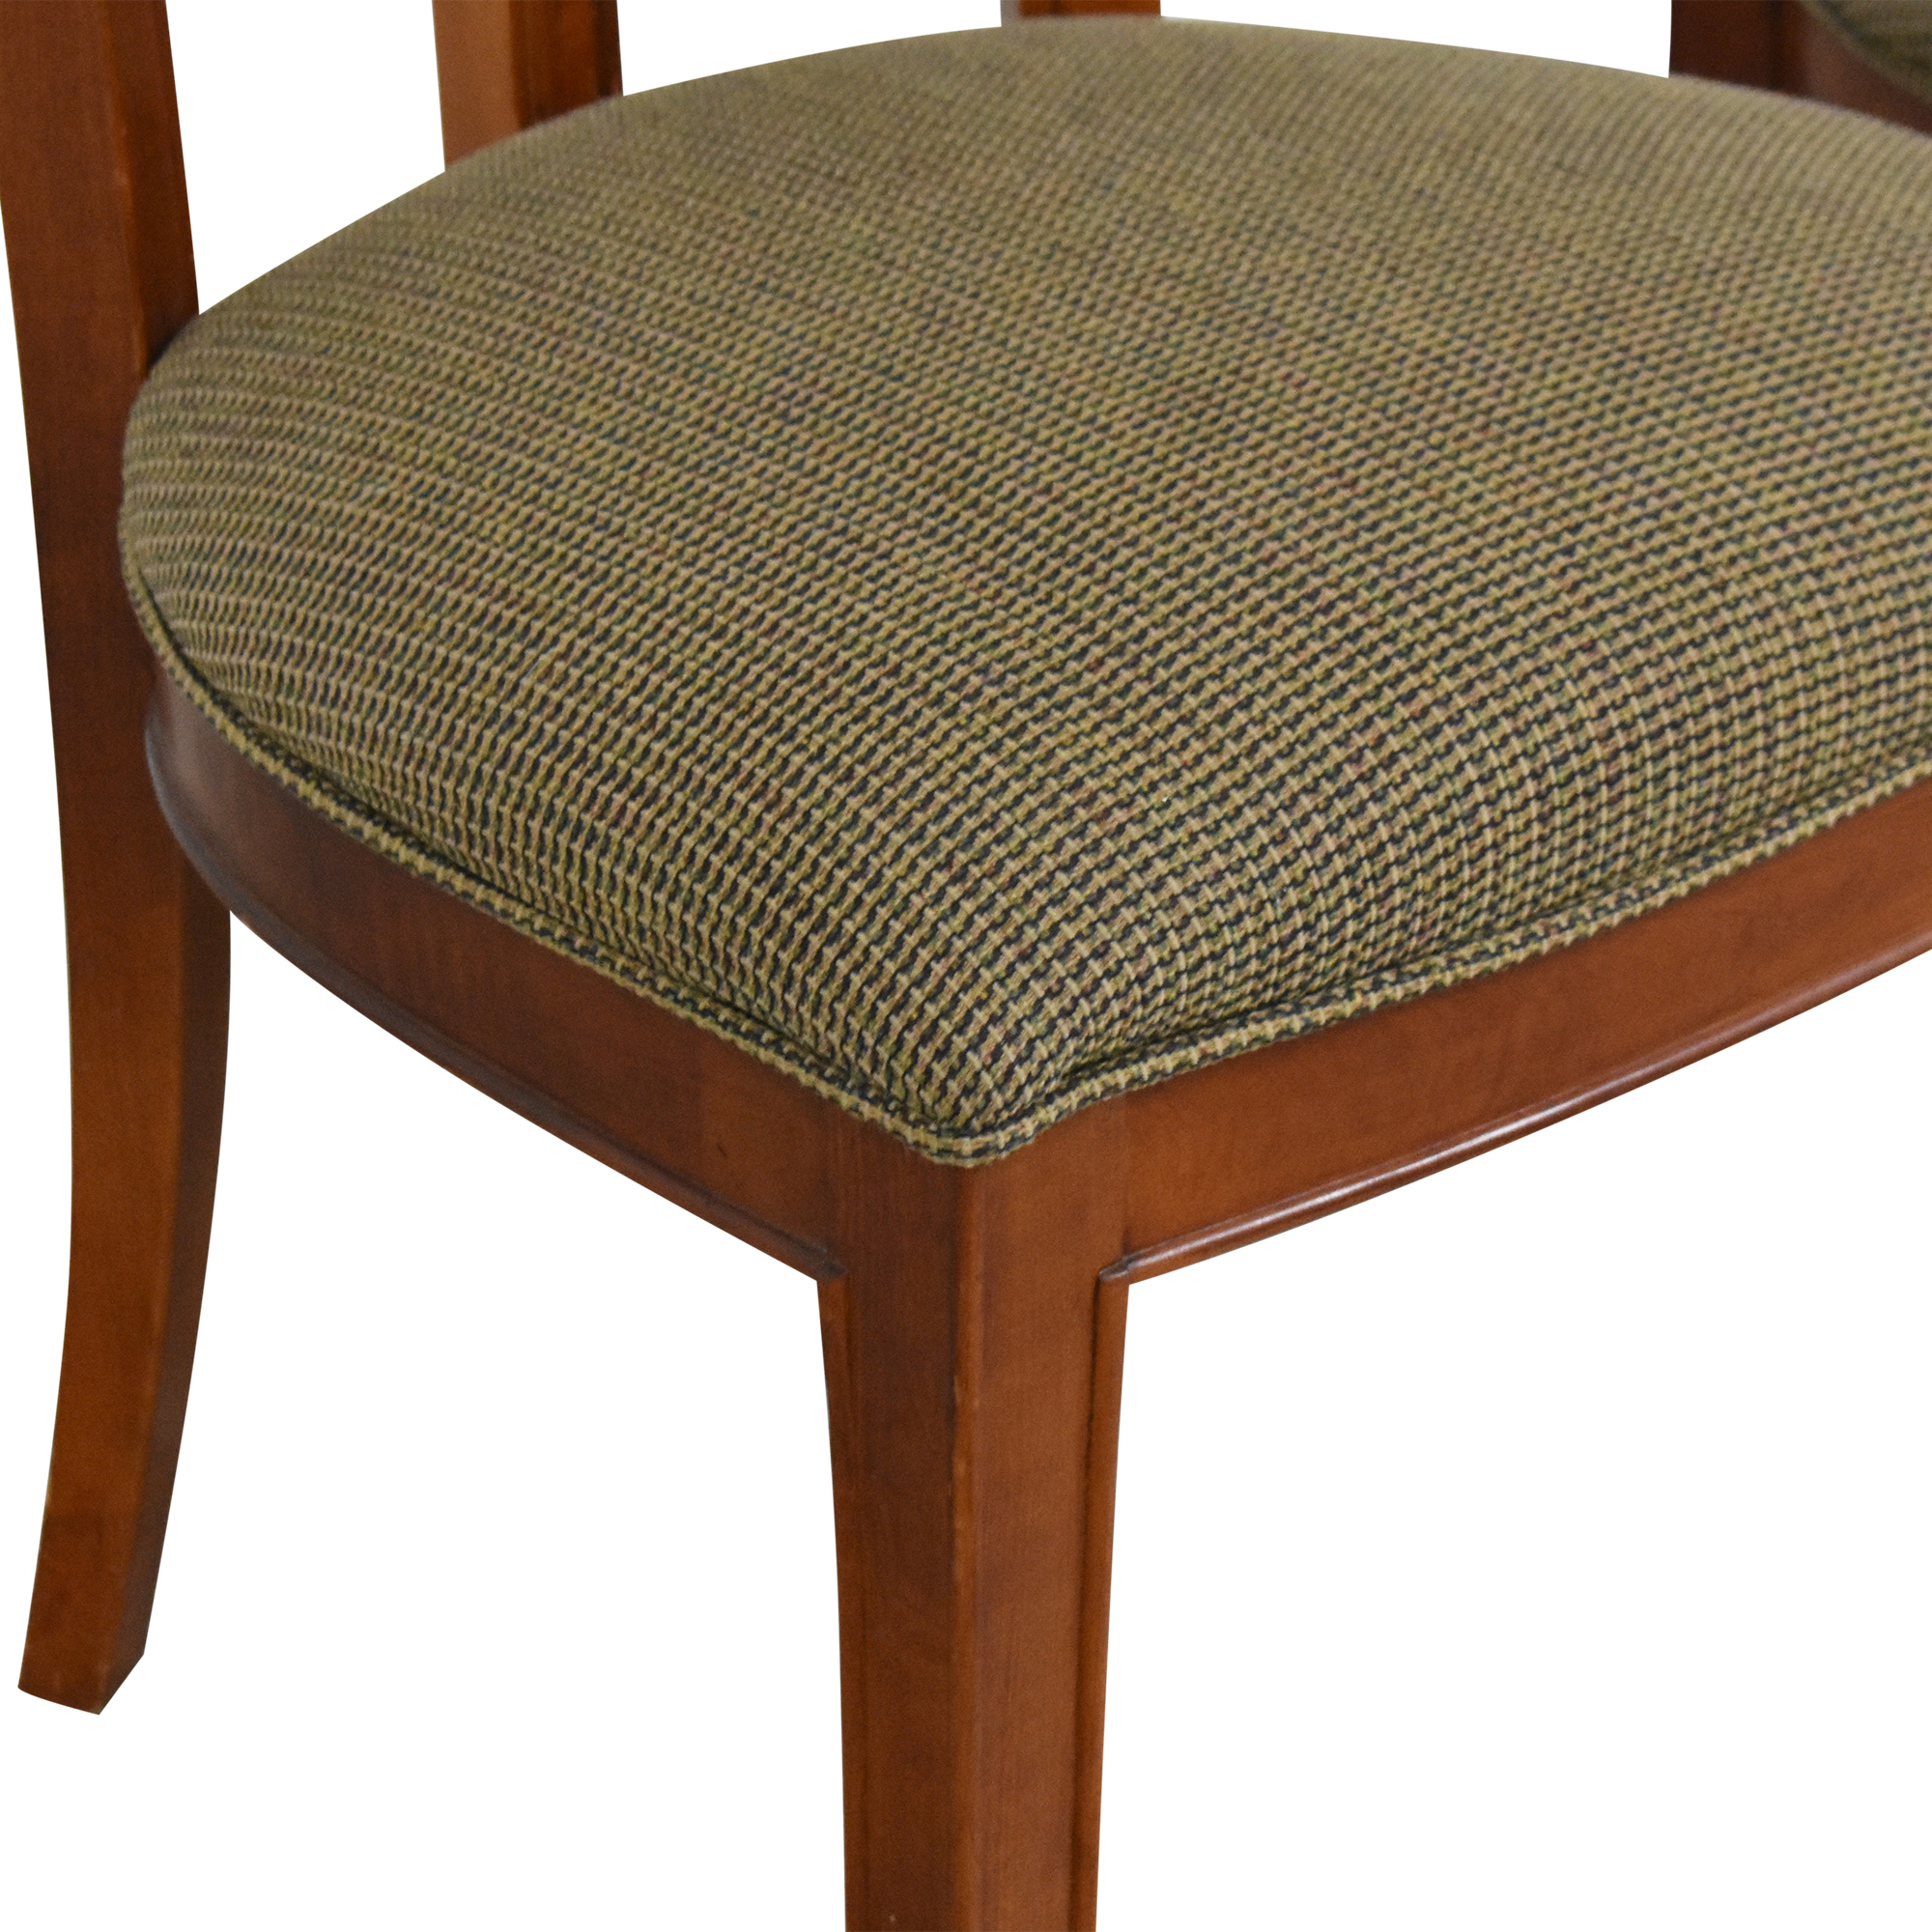 Stanley Furniture Stanley Furniture Upholstered Dining Chairs ma